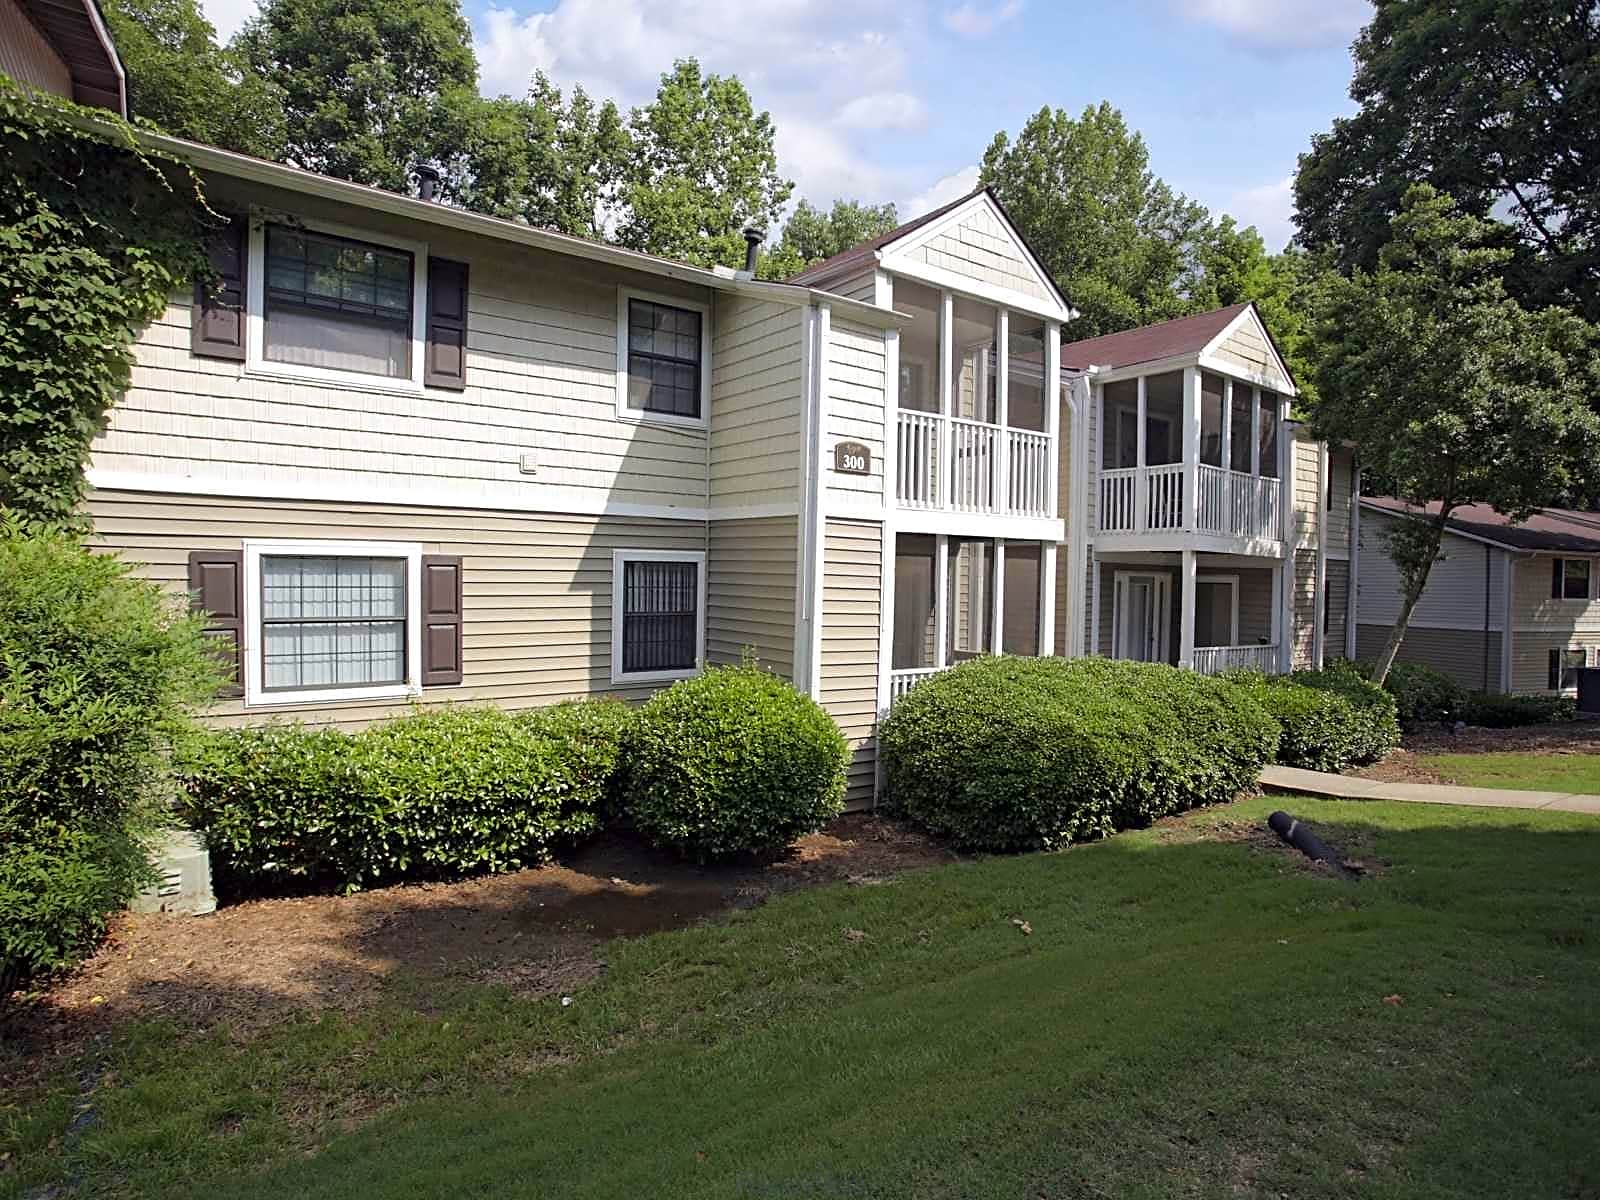 Apartments And Houses For Rent In Marietta